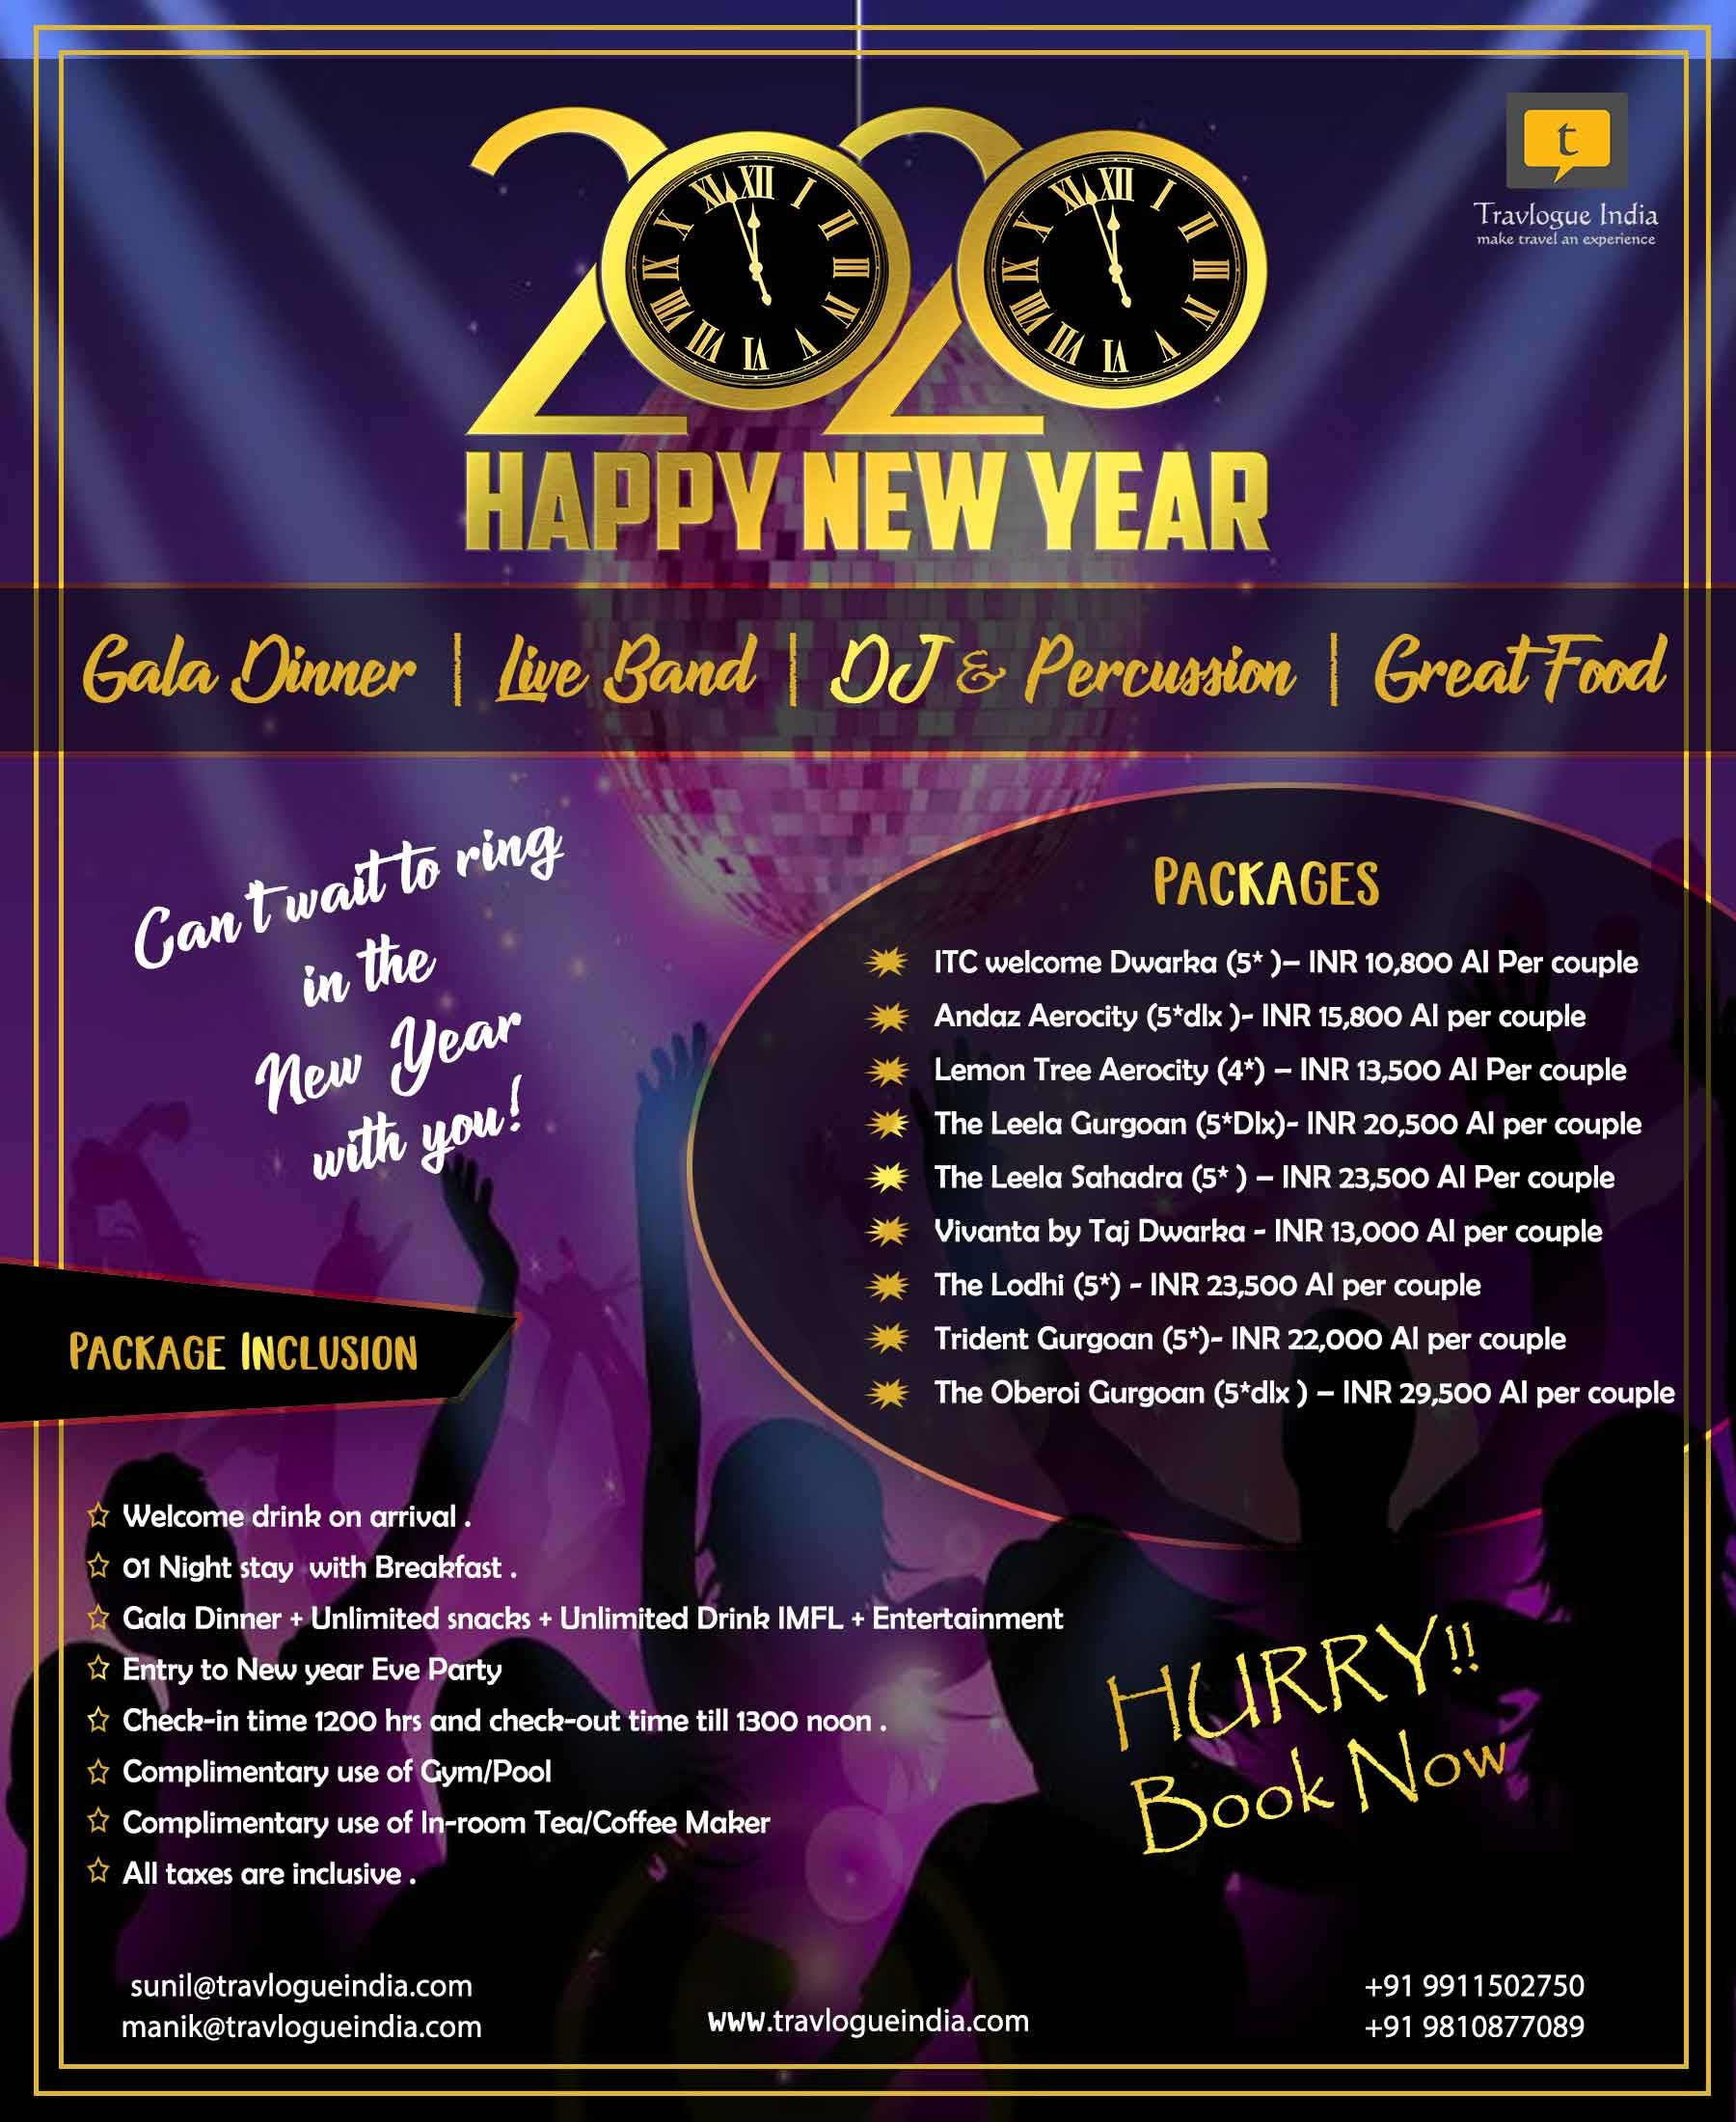 New Year Celebration In 5 Star Hotels In Delhi Book Tickets Now Grab The Best Deals Gala Dinner Live Holiday Tours International Holidays Tour Packages